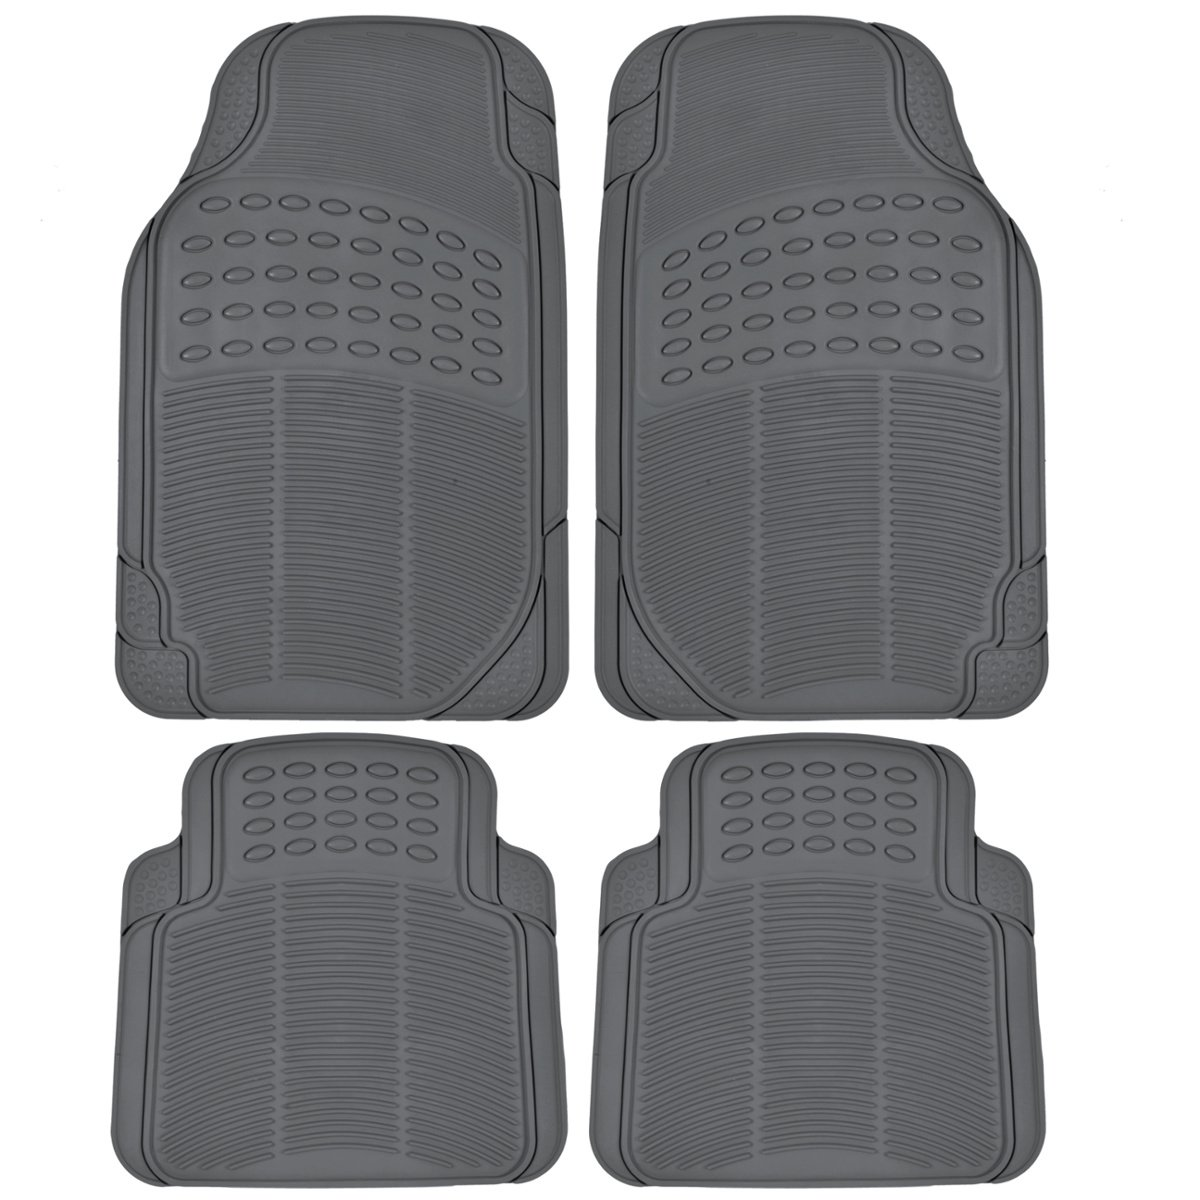 BDK MT-654-BG Heavy Duty 4-Piece Front and Rear Rubber Mats-All Weather Protection-Universal Car Truck SUV-Beige